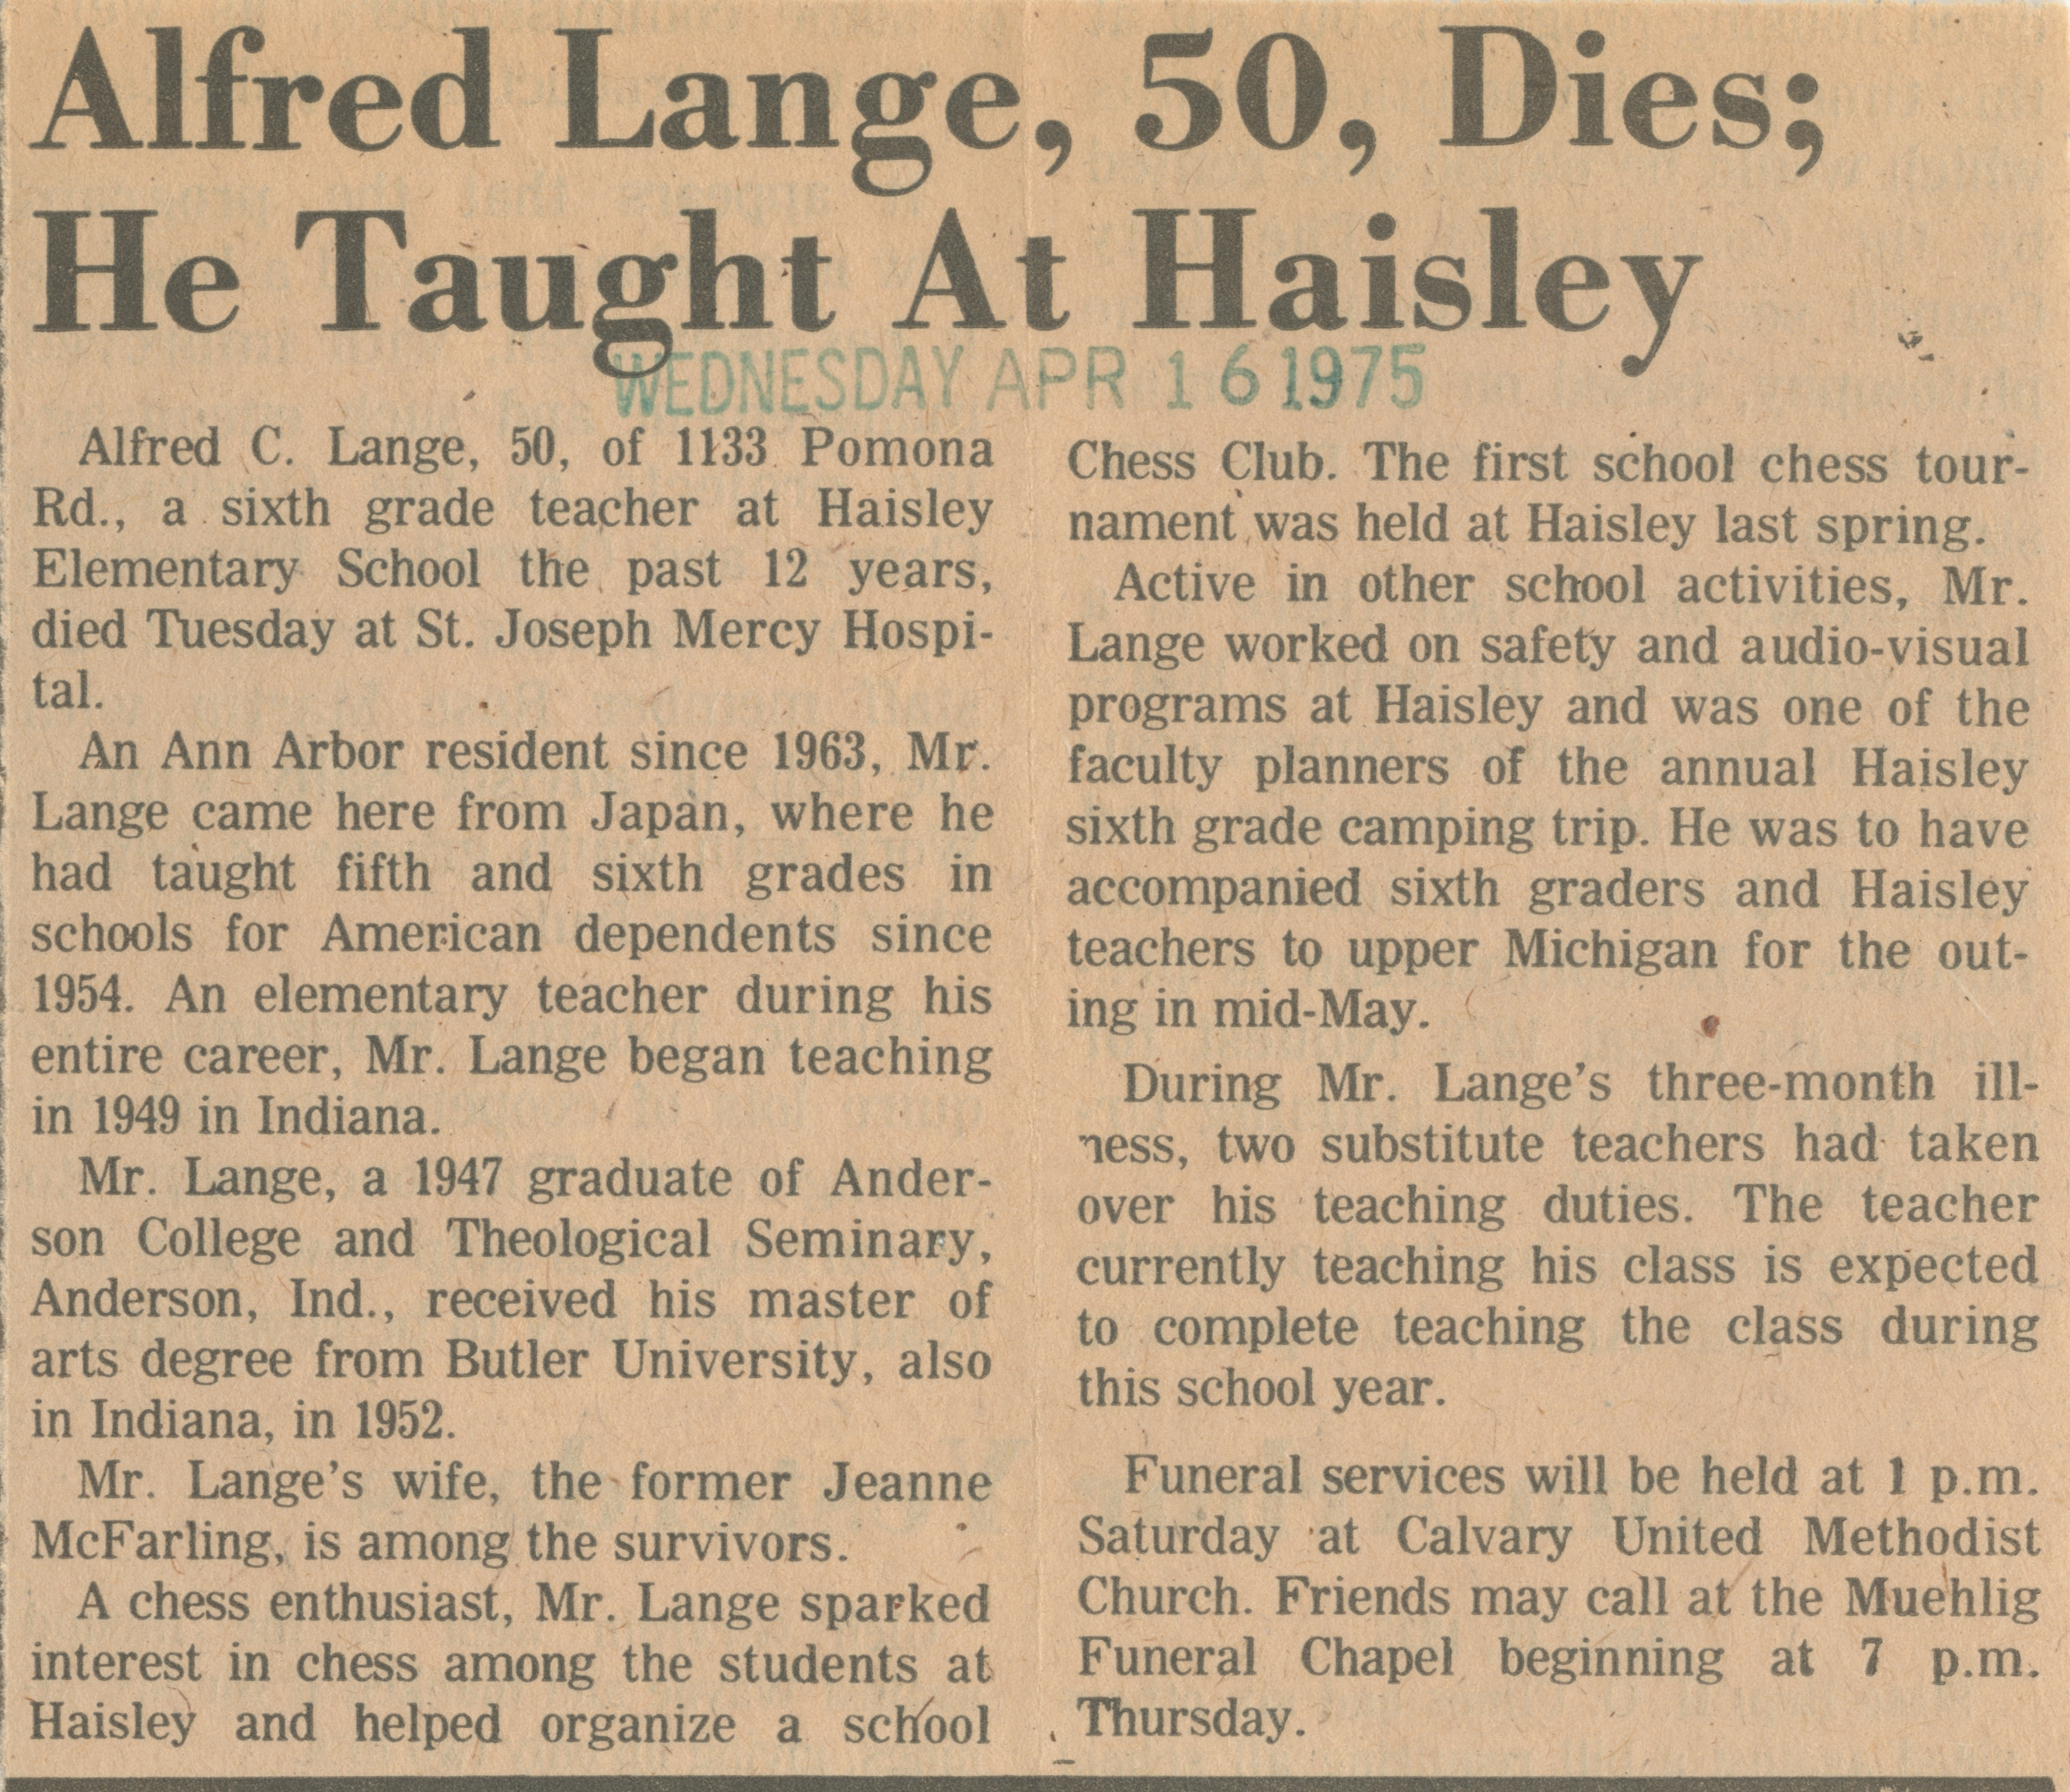 Alfred Lange, 50, Dies; He Taught At Haisley image